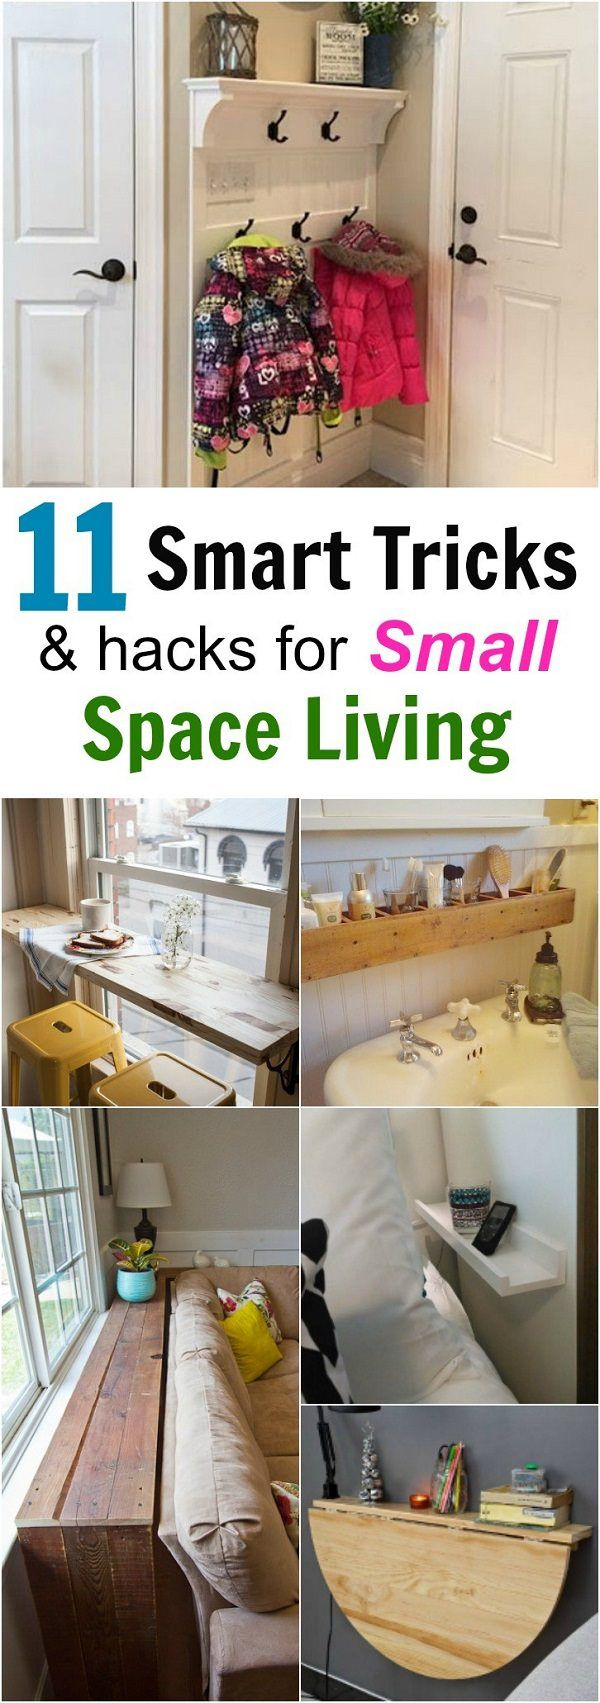 Storage amp organisation home office products housekeeping flooring baby - If You Have A Small Home You Need To Use Every Bit Of Space To Keep